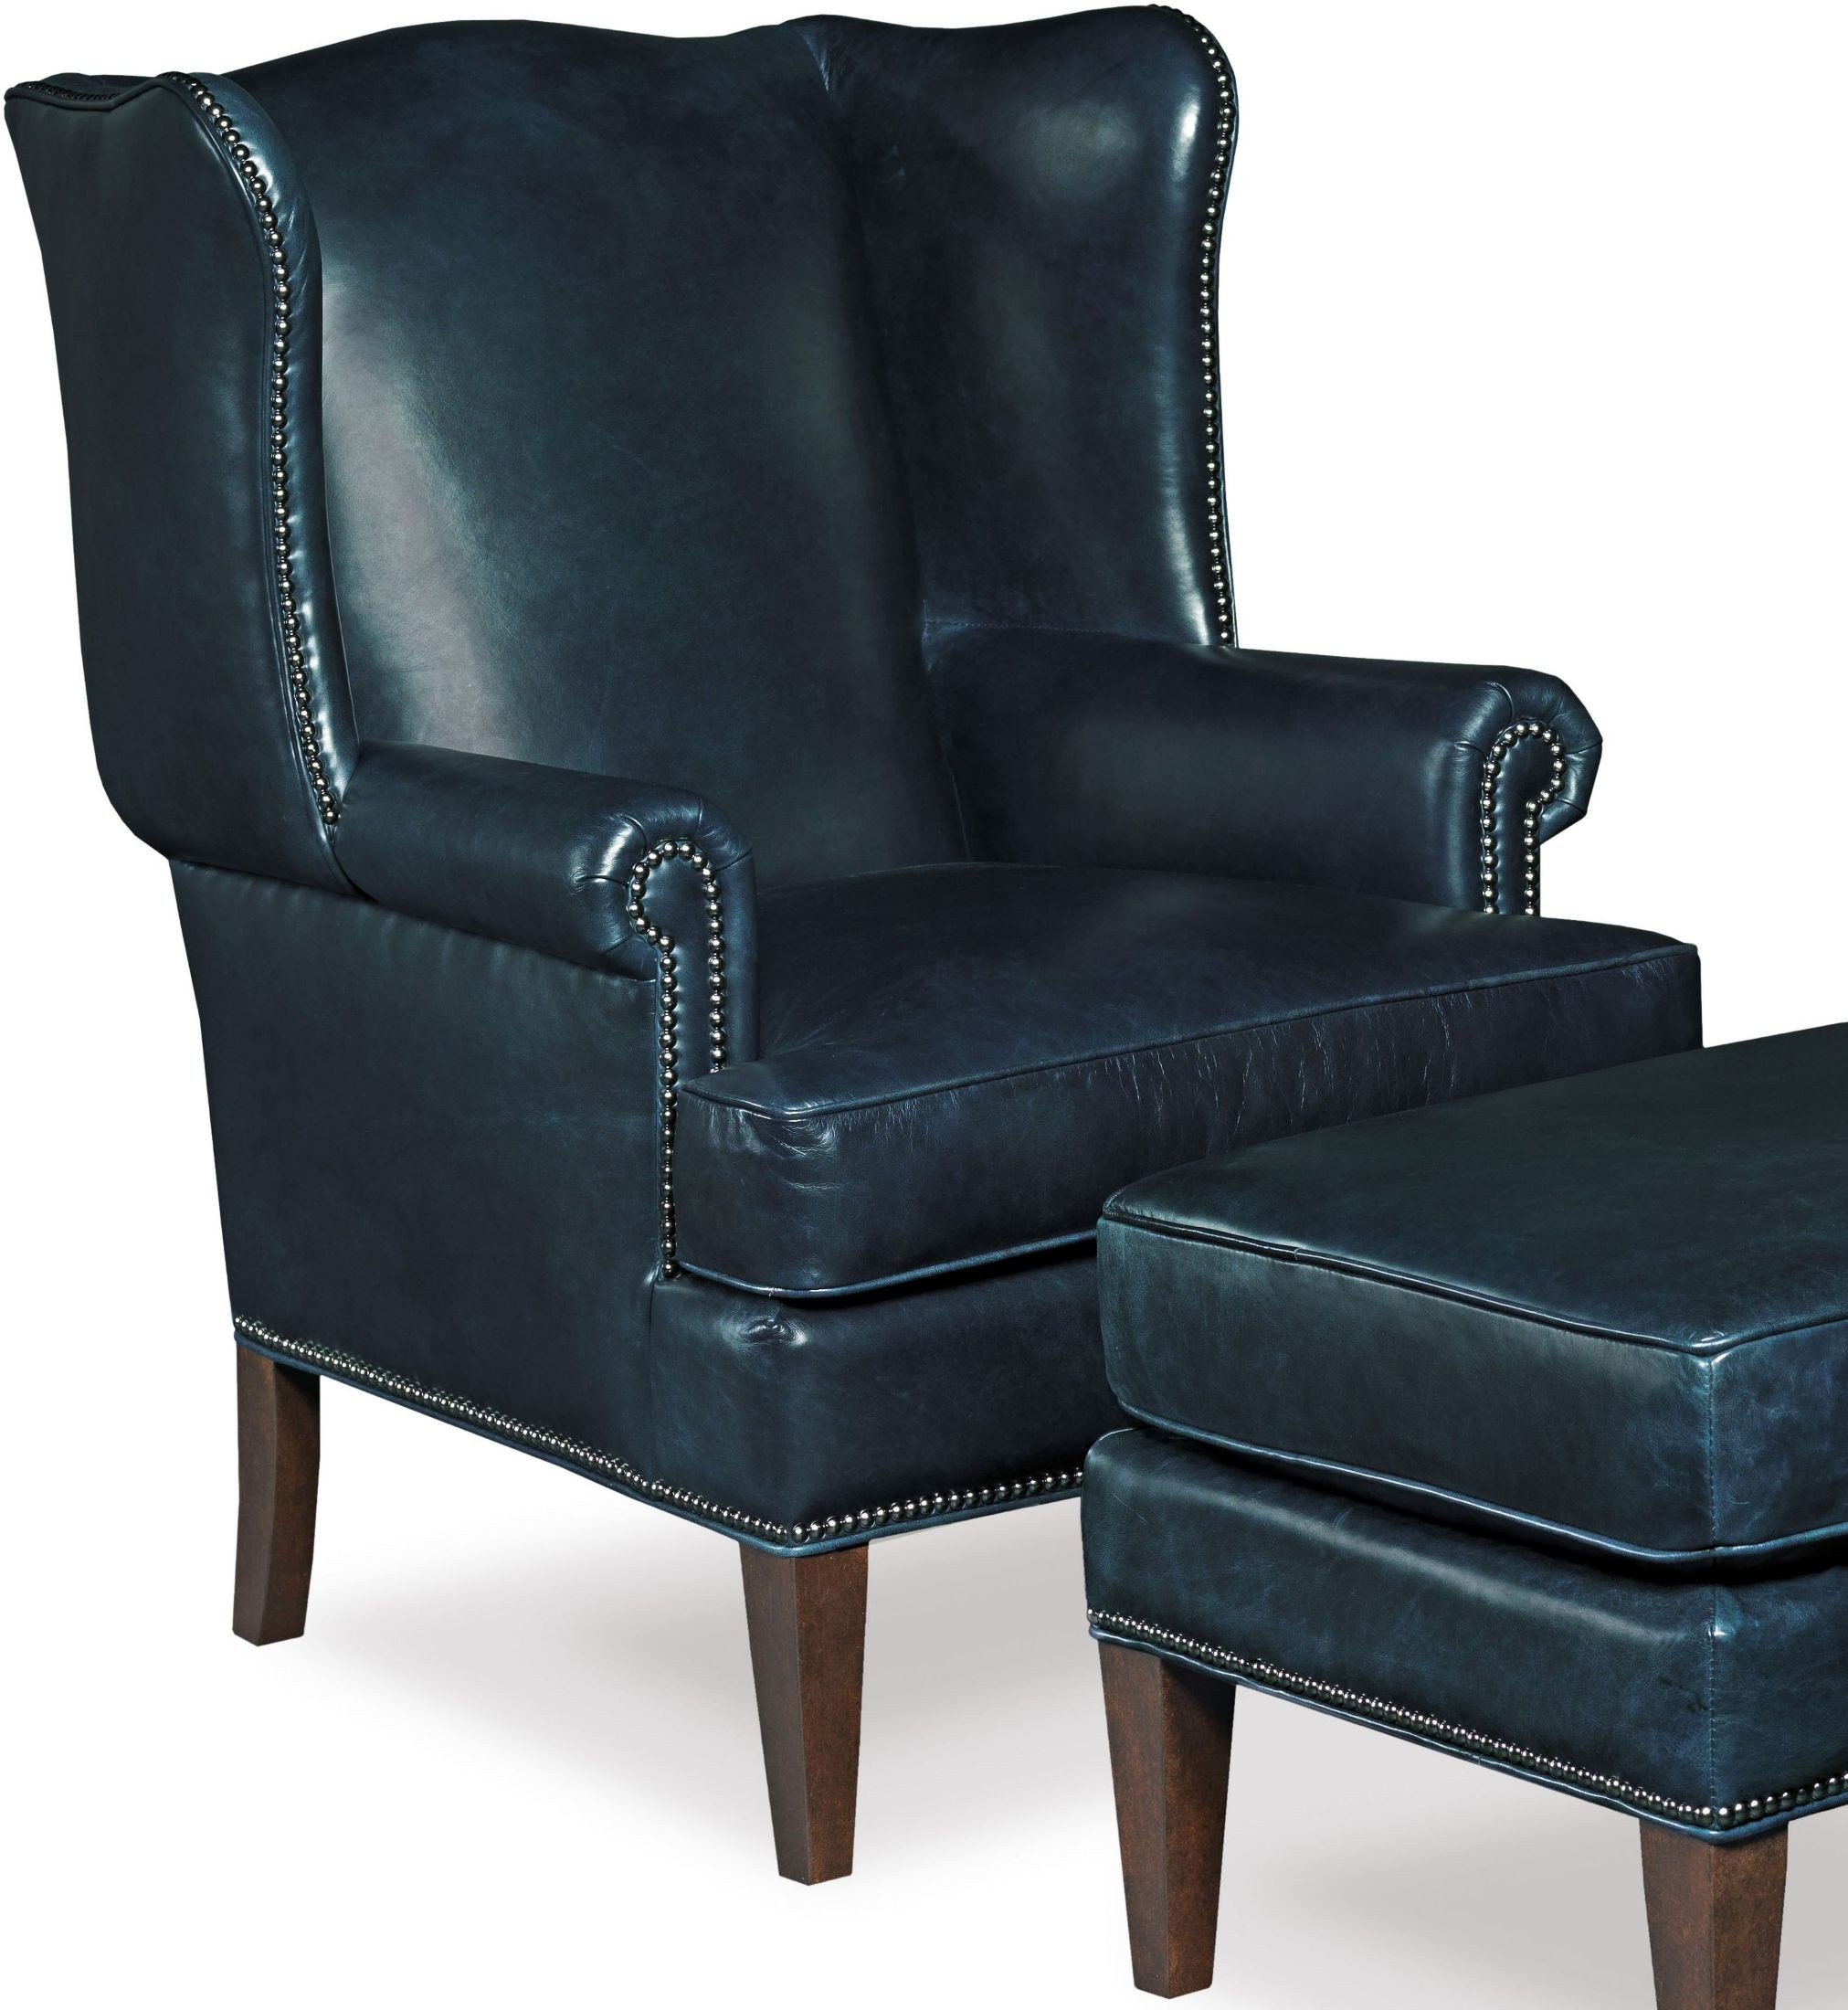 Blue Leather Club Chair Blakeley Blue Leather Club Chair From Hooker Coleman